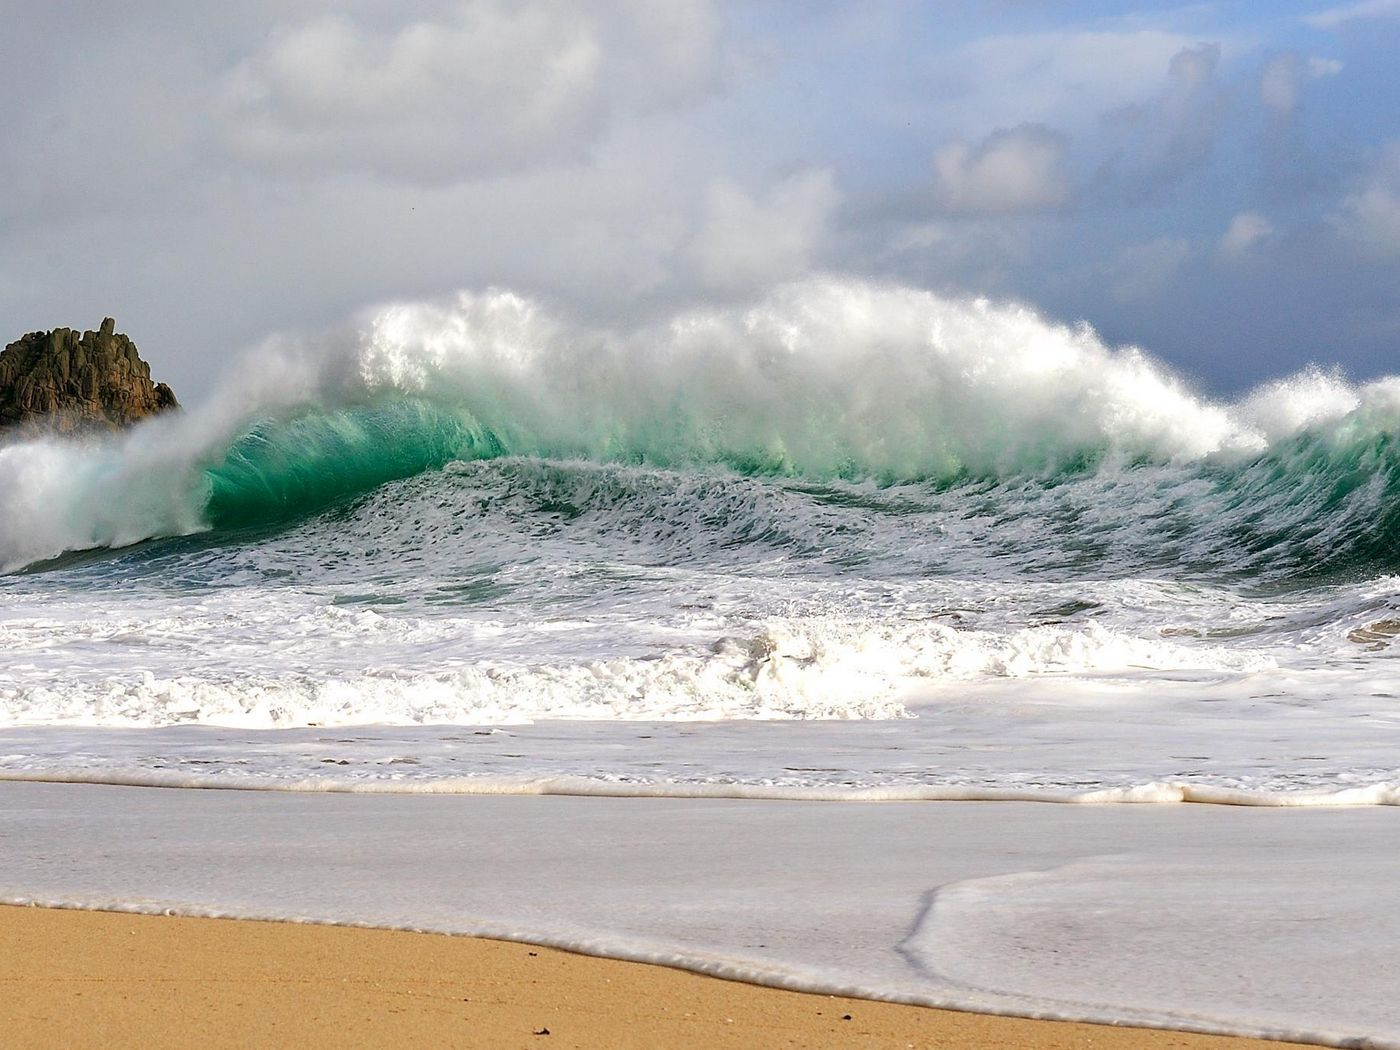 1400x1050 Wallpaper waves, storm, coast, bad weather, force, power, blow, streams, wind, splashes